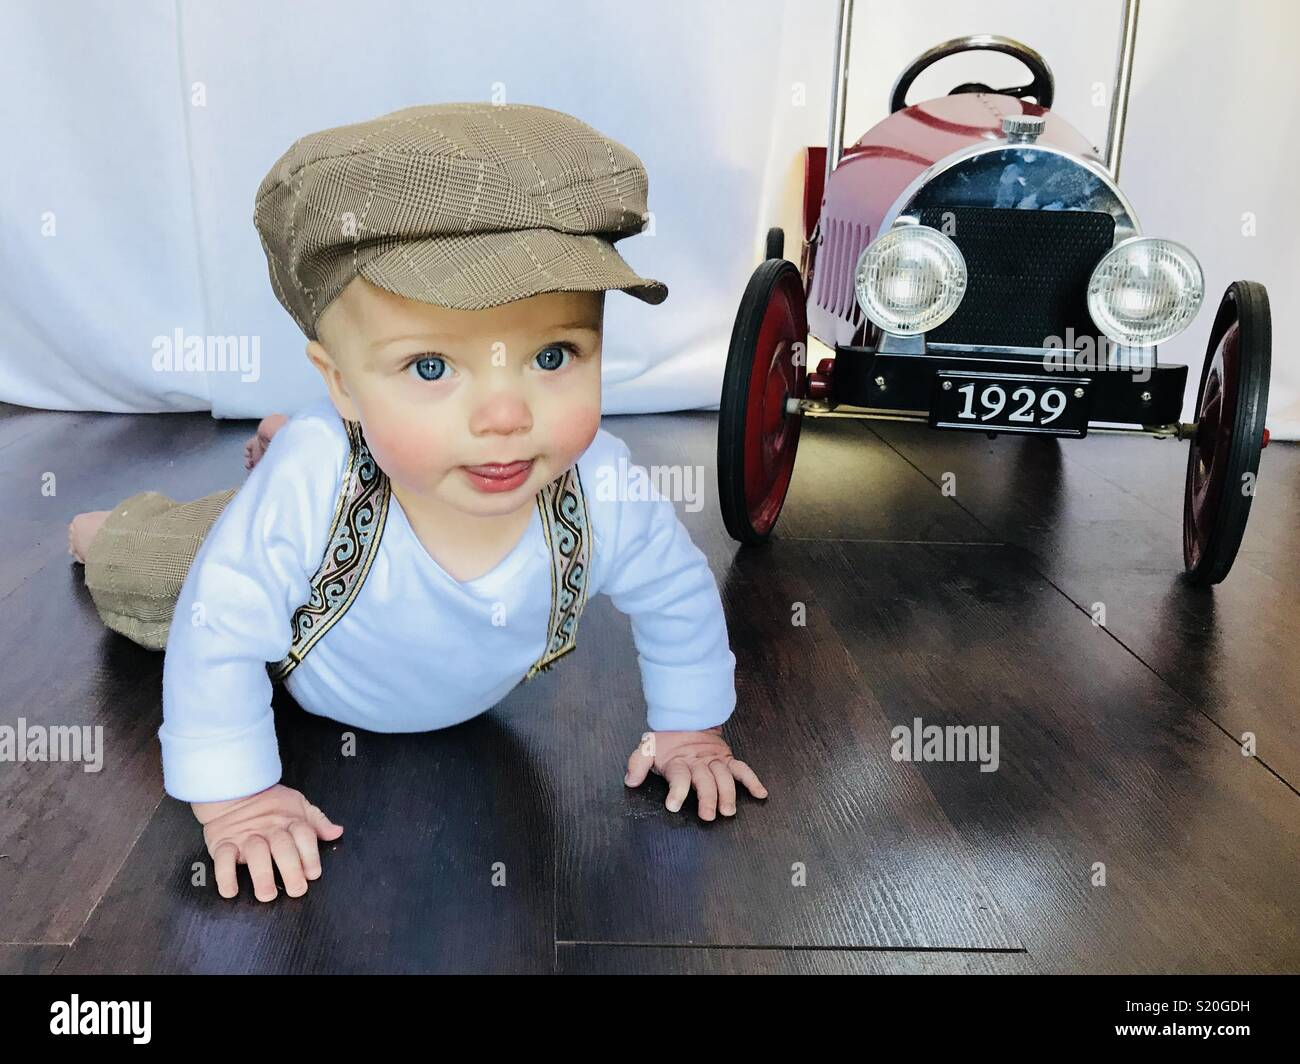 Cute baby in a news boy outfit playing with his antique looking peddle car. This cute baby wears brown tan knickers, suspenders and a news boy hat while crawling beside his car. - Stock Image